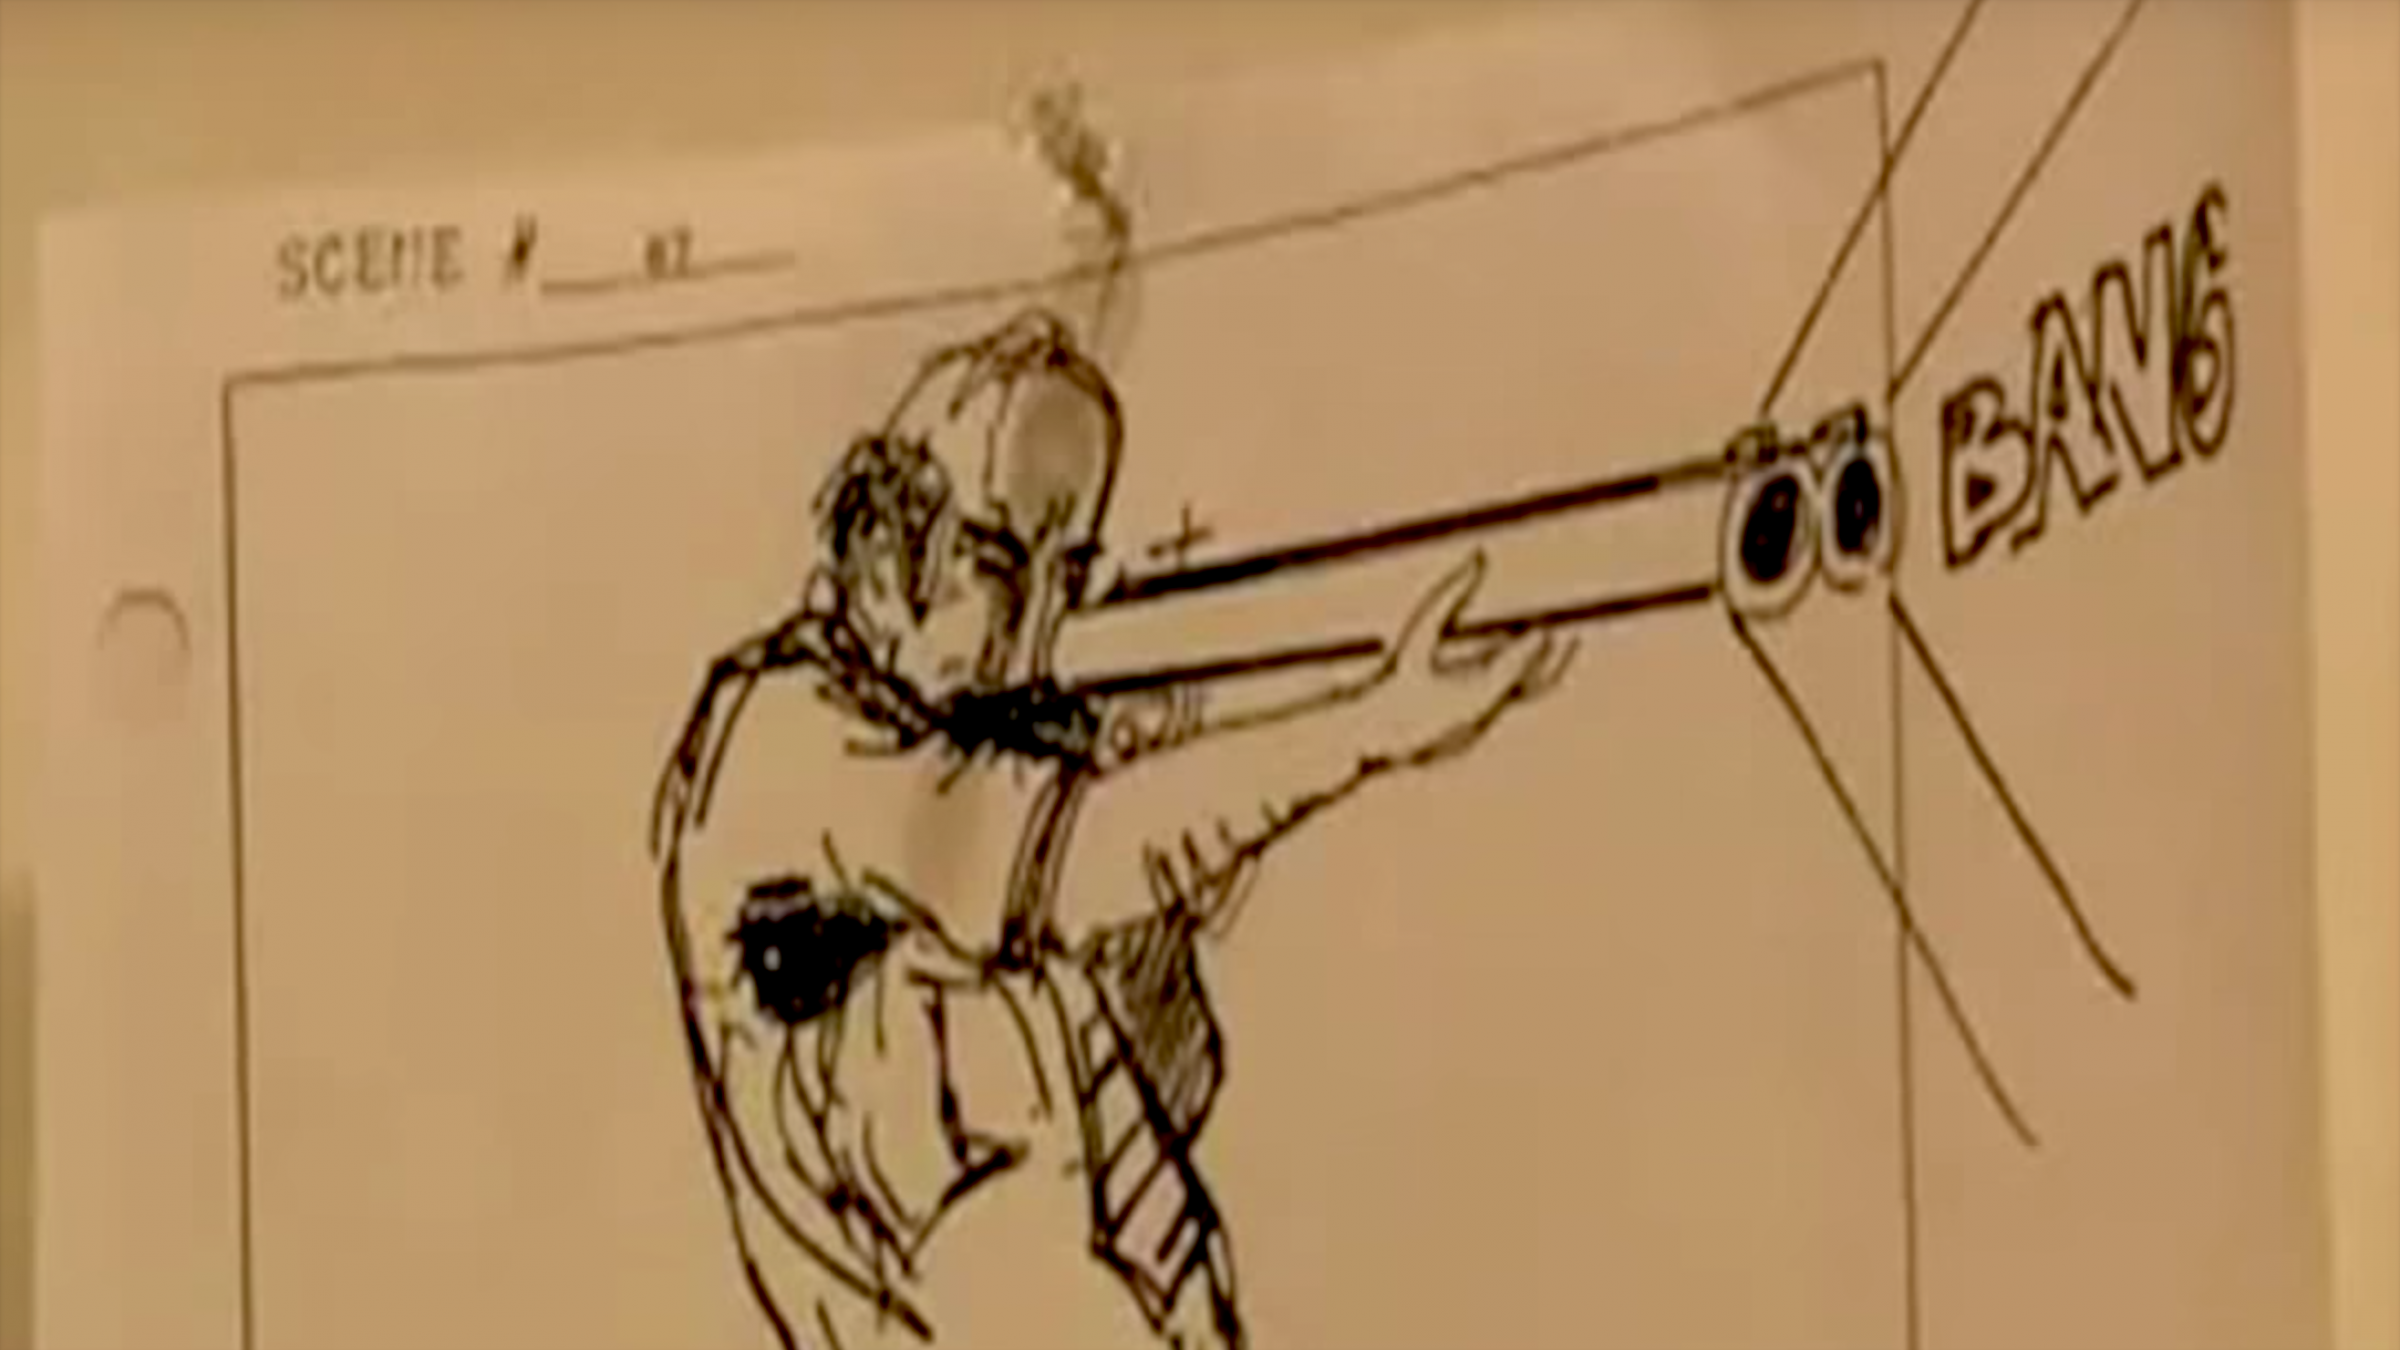 Watch: An Inside Look at Storyboarding with the Coen Brothers' Storyboard Artist